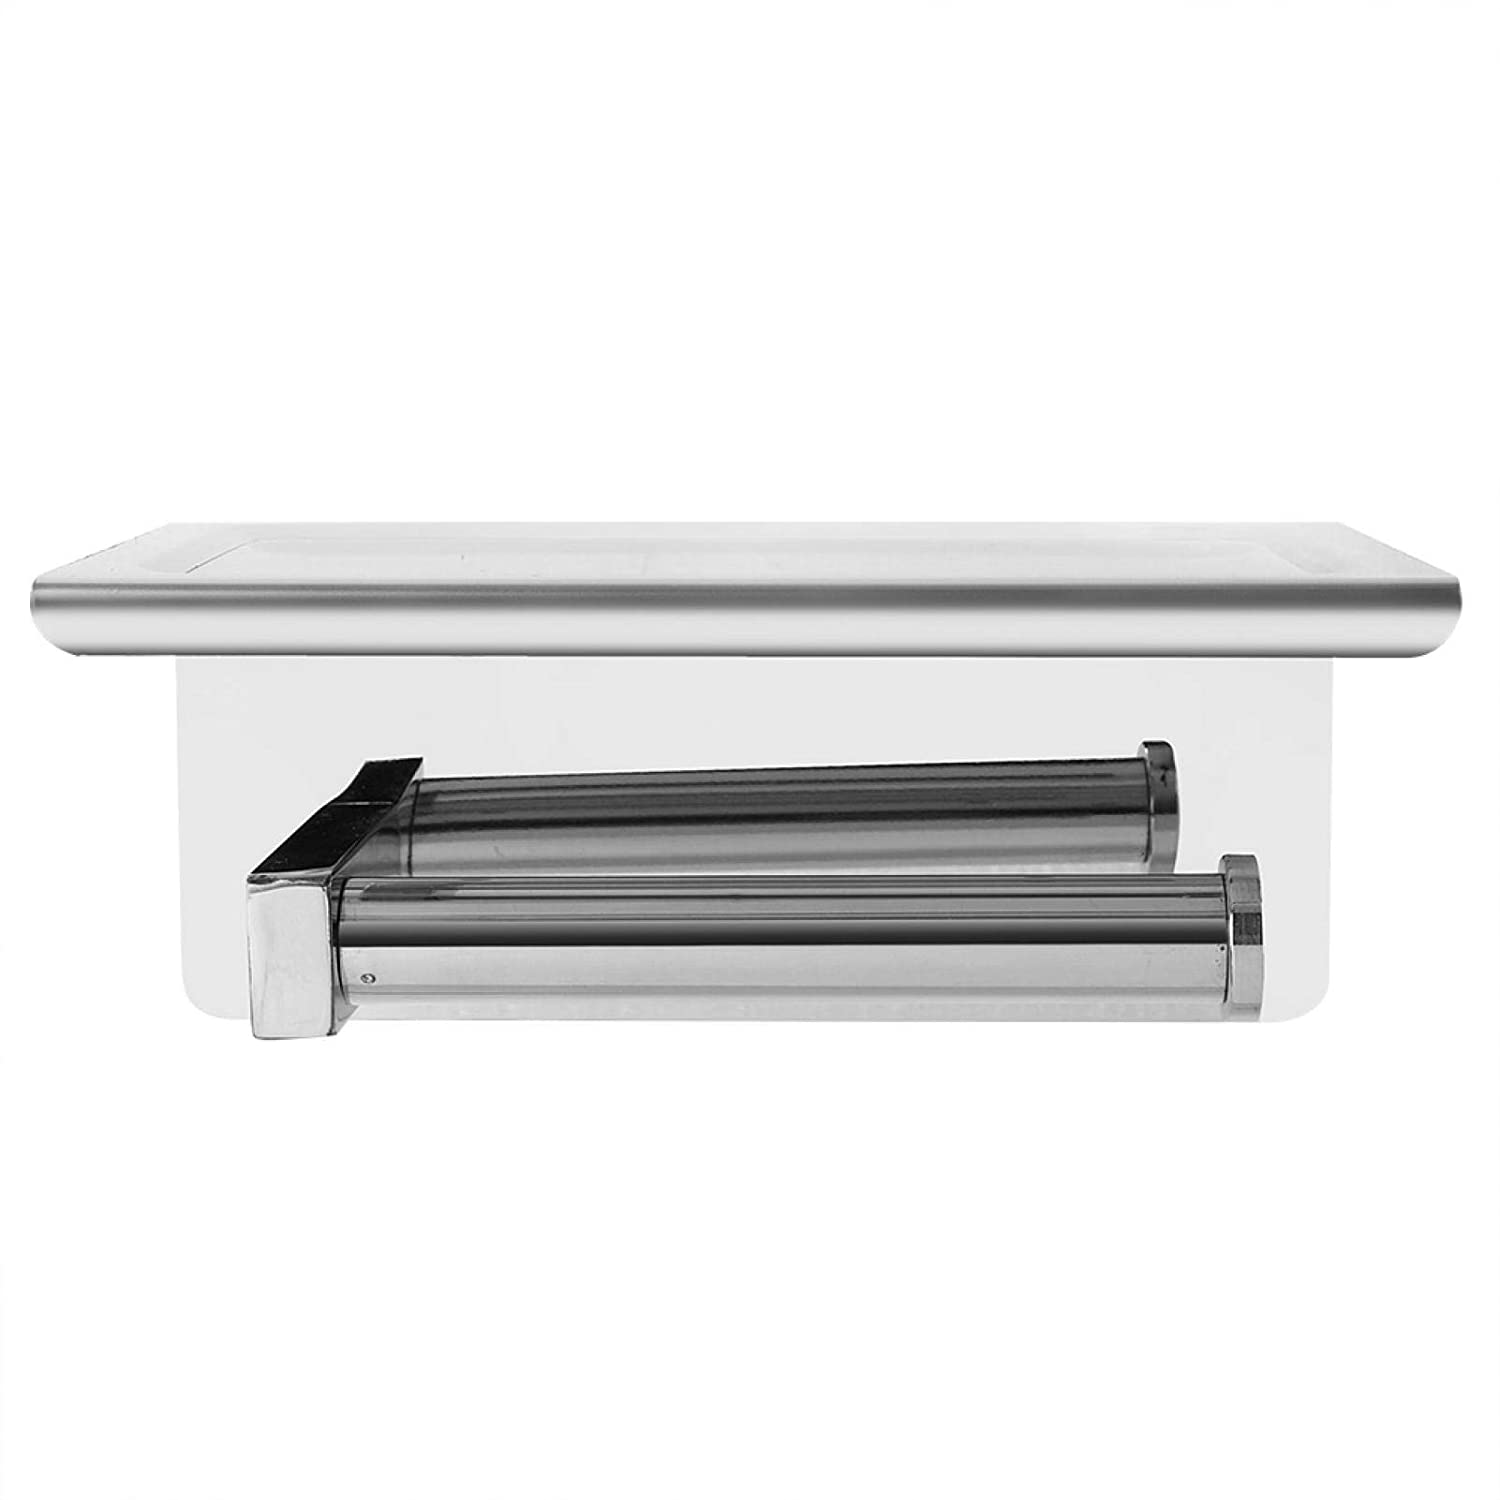 Paper Max 80% OFF Towel Holder Roll Rack Storage Great Practical Miami Mall